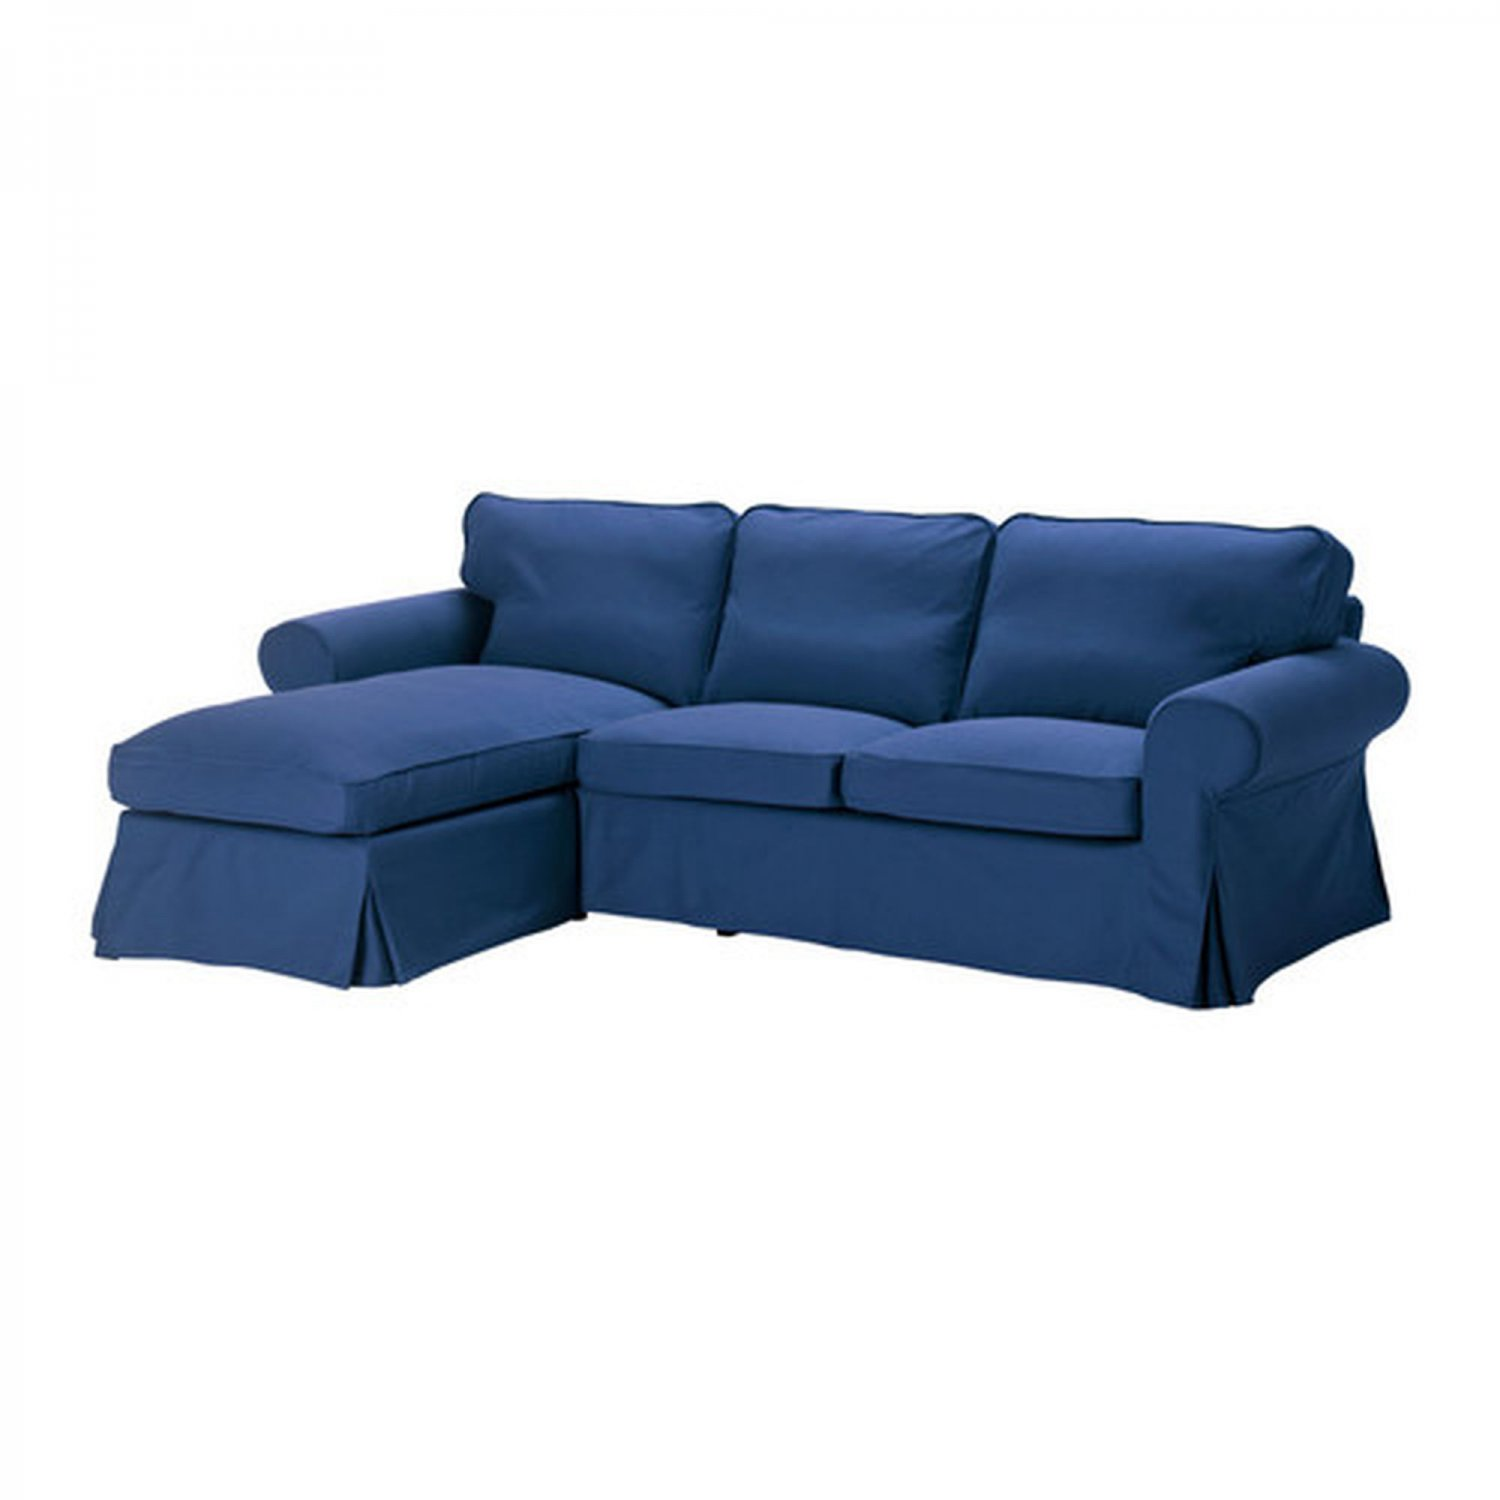 Ikea ektorp loveseat with chaise lounge cover slipcover for Chaise lounge couch